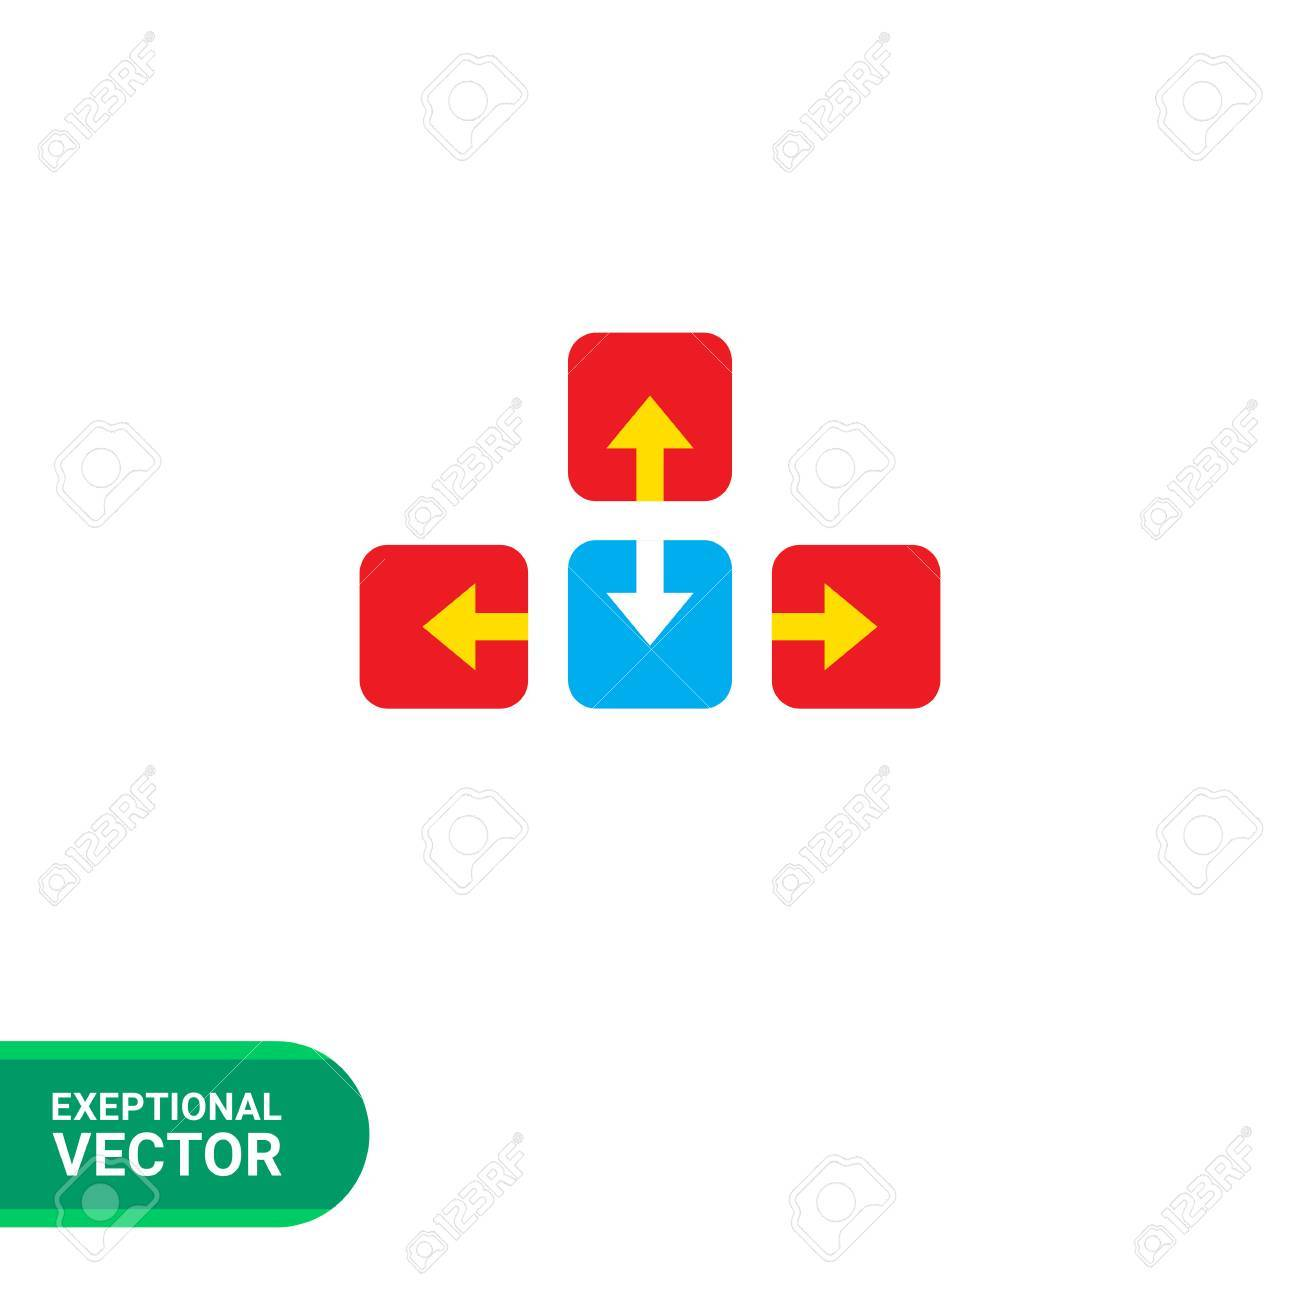 Icon Of Colored Keyboard Arrow Buttons Royalty Free Cliparts